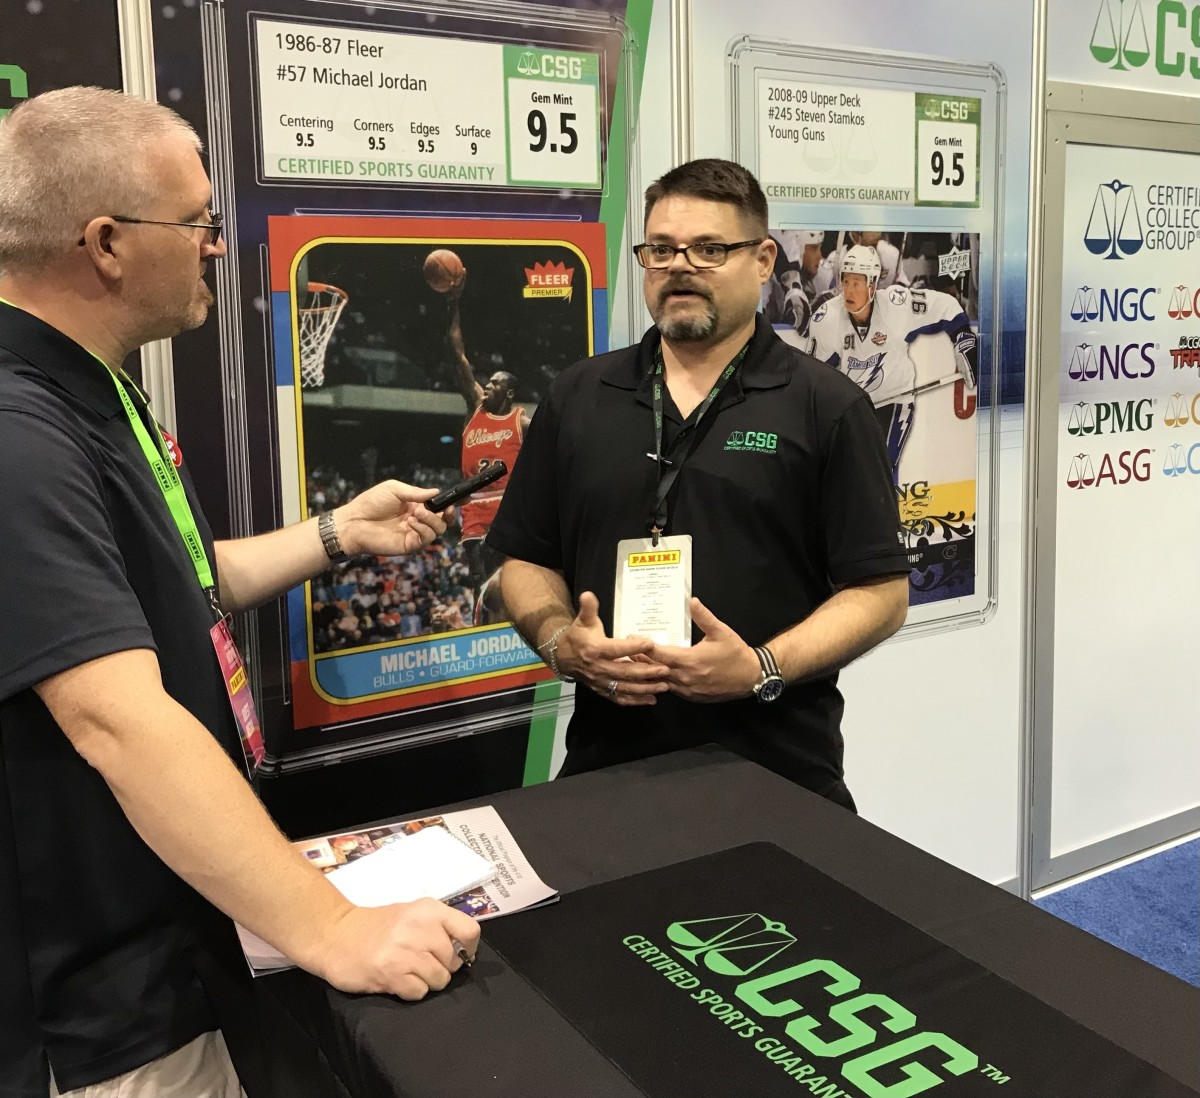 CSG's Andy Broome at the CSG booth at The National.